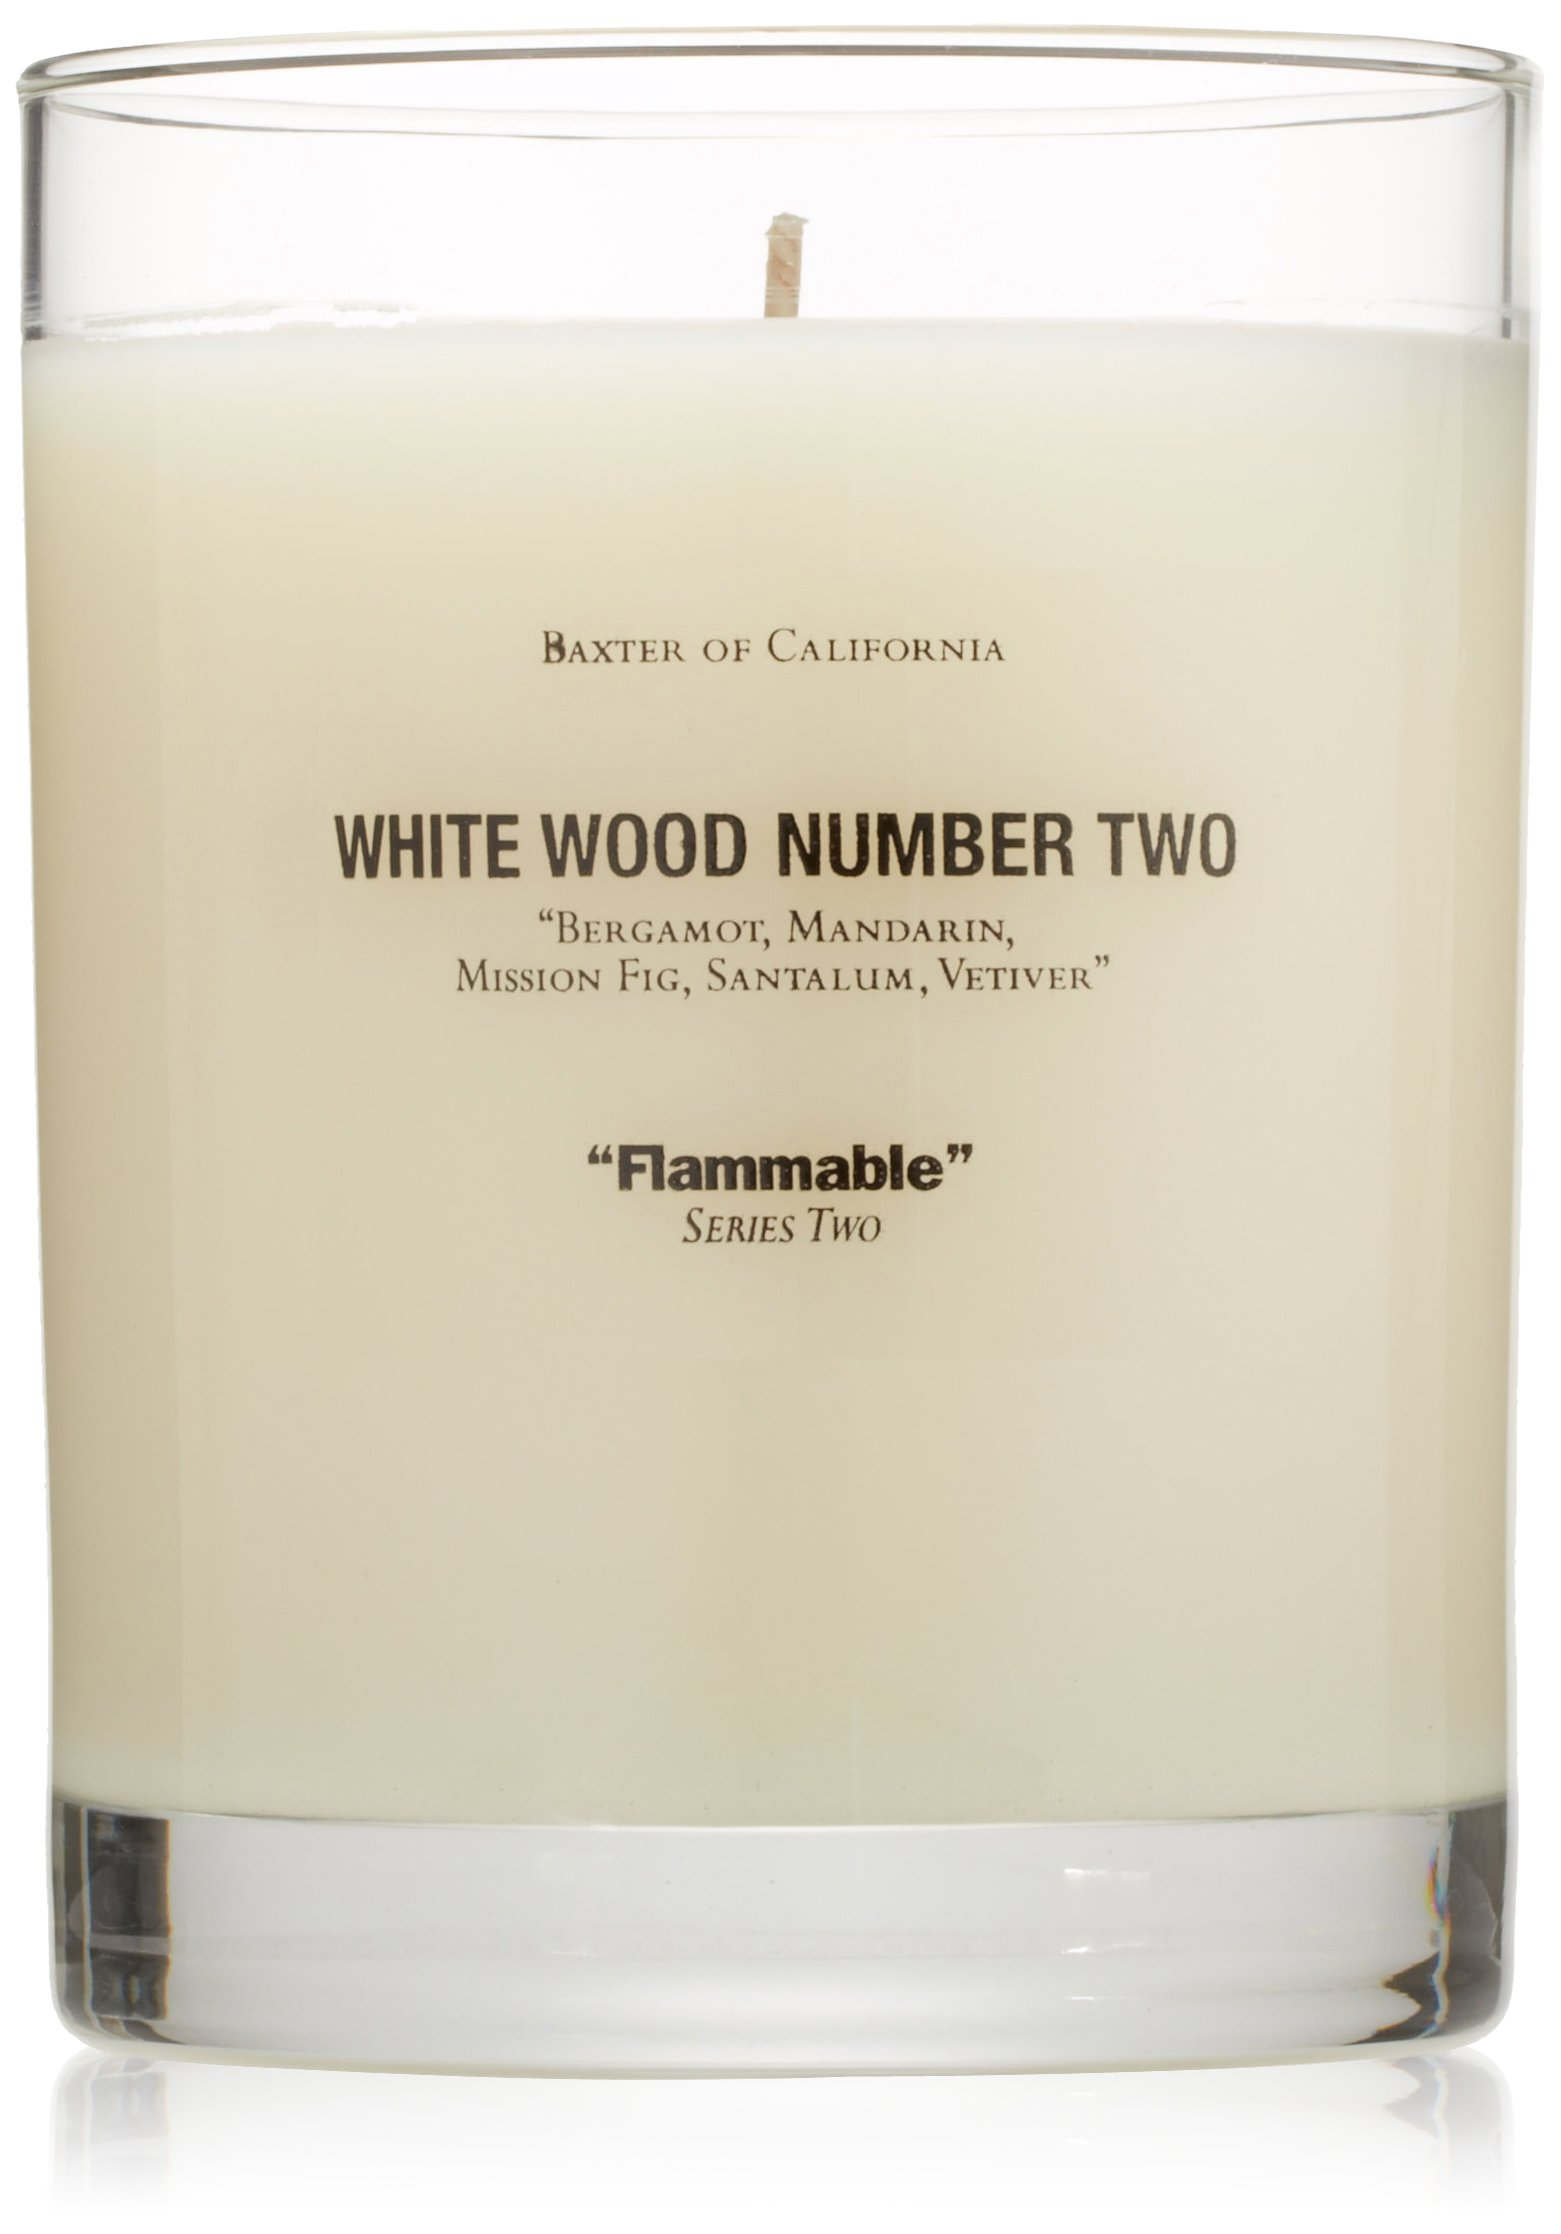 Baxter of California Scented Candle, White Wood Number Two by Baxter of California